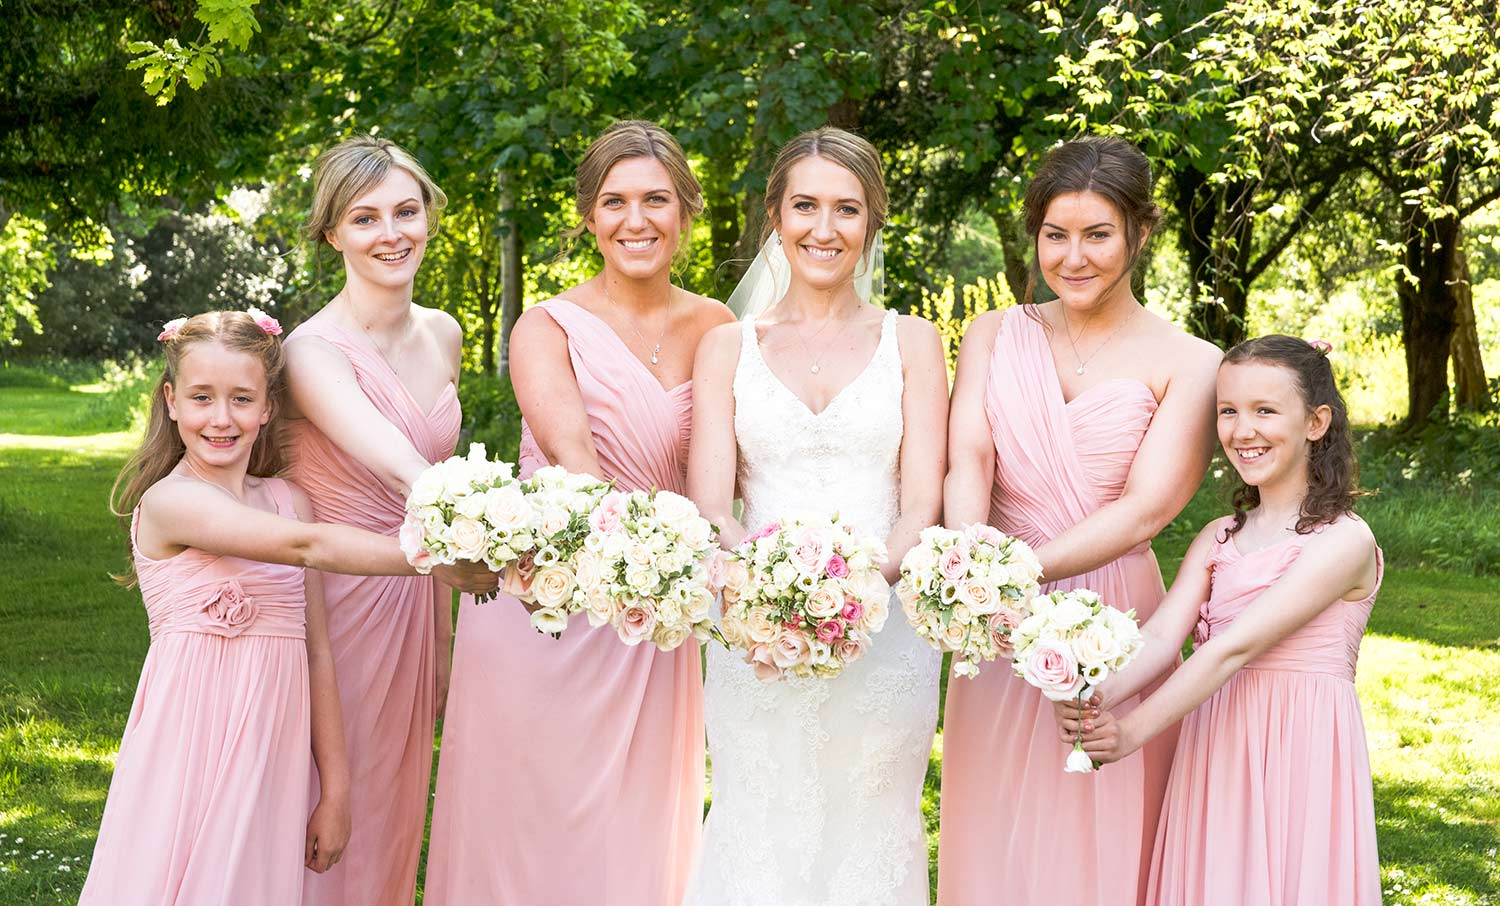 Bride on her own with bridesmaids and flower girls, how long to plan for group photographs